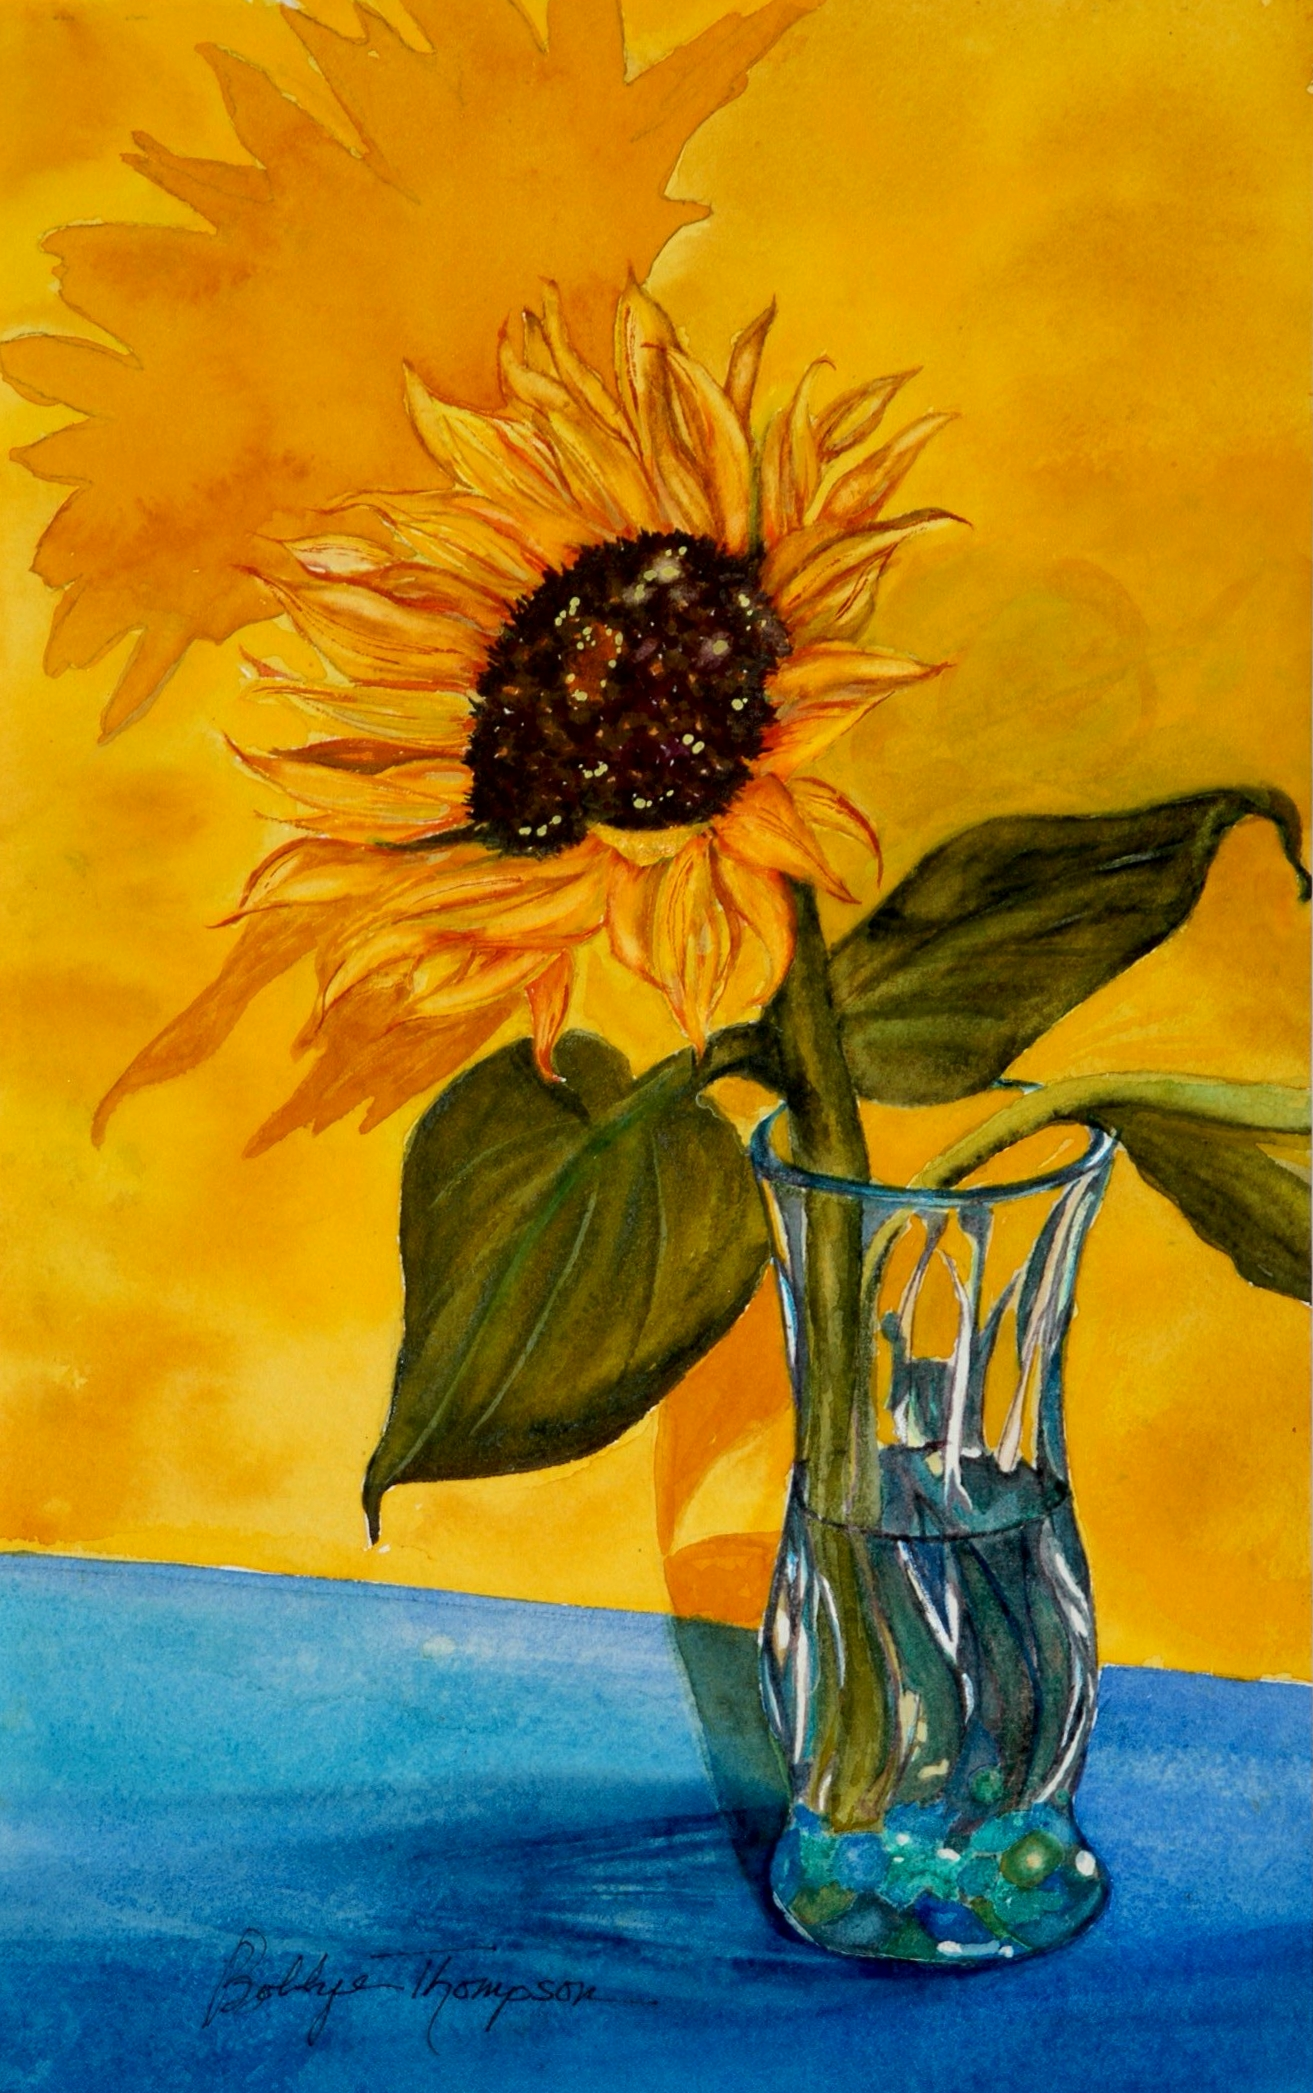 Sunflower & Shadows - Watercolor.JPG